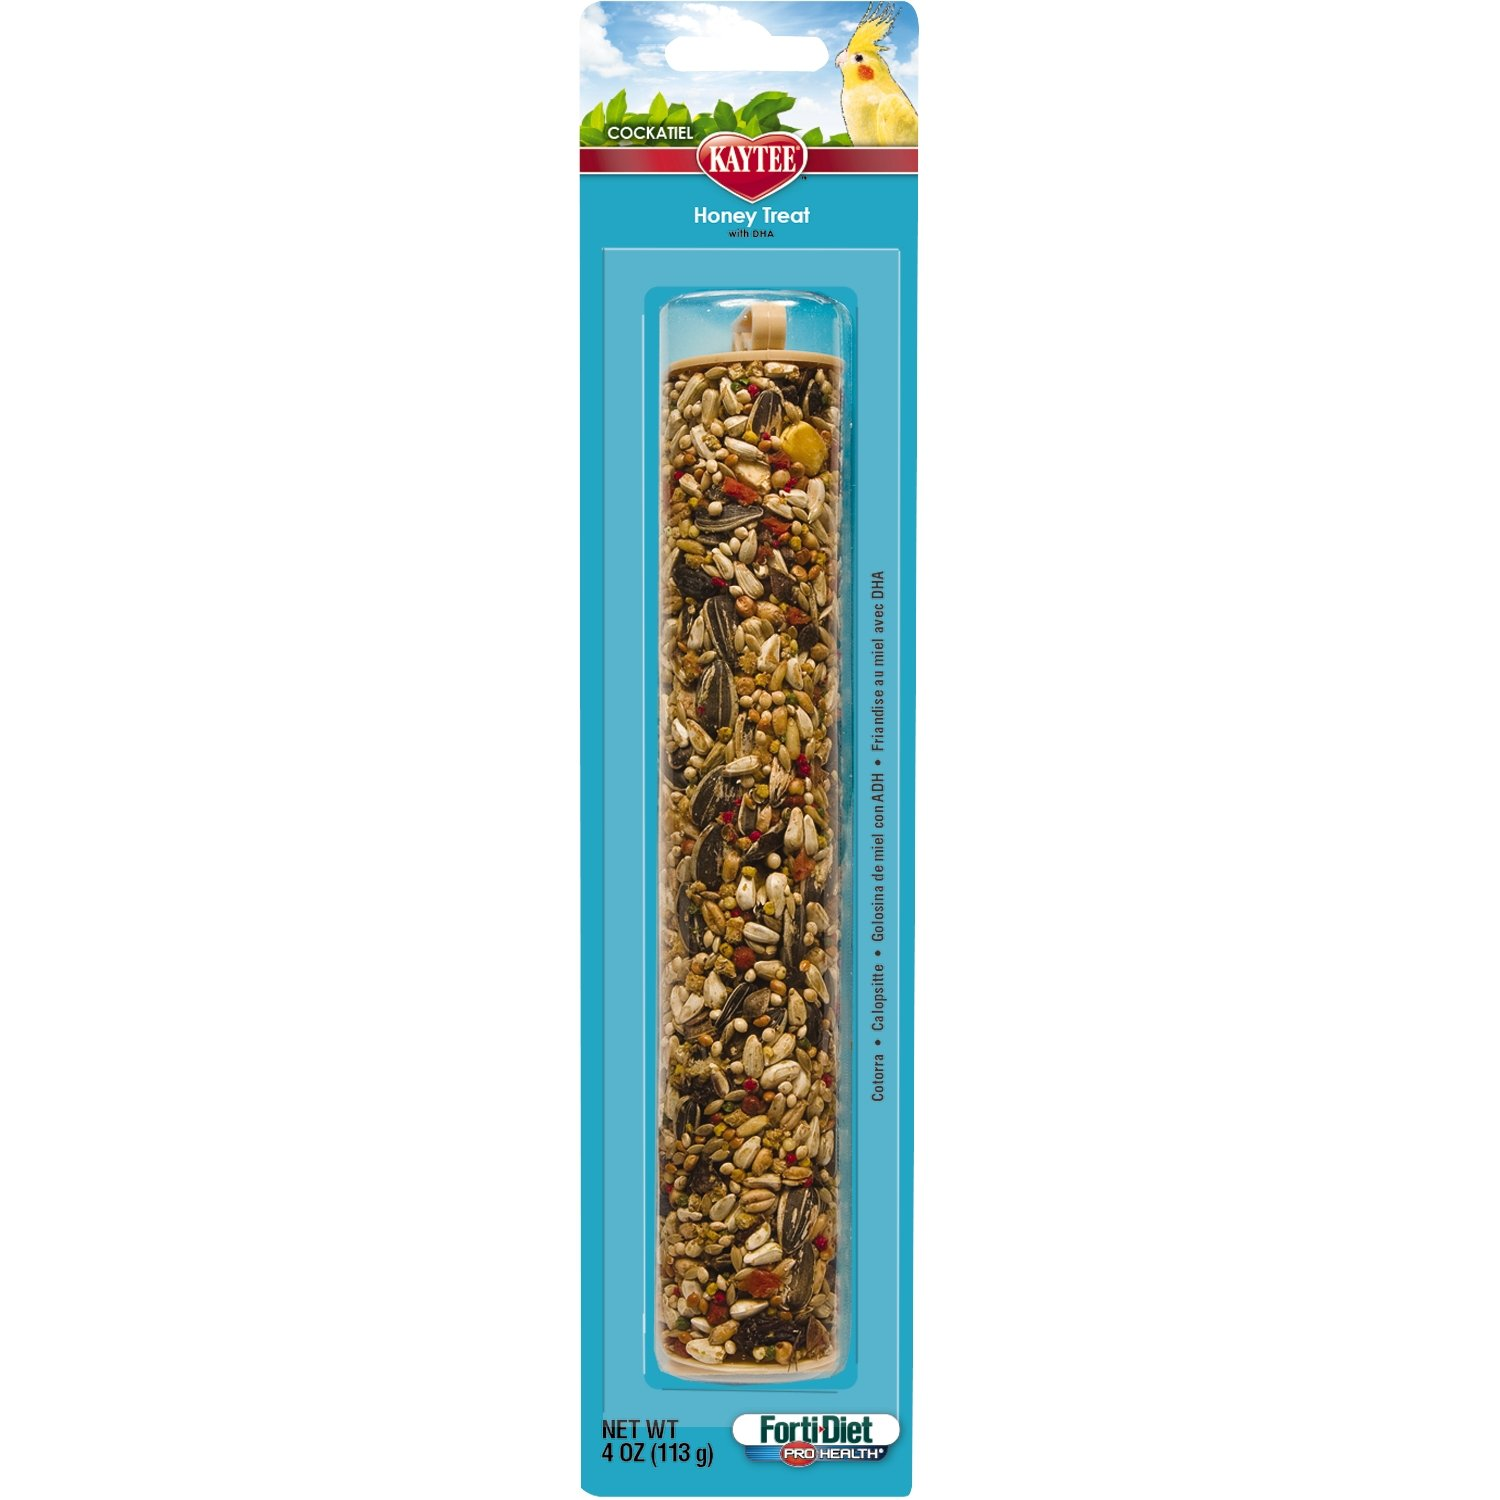 Kaytee Forti Diet Pro Health Honey Bird Stick Treats for Cockatiels, 4-Ounce